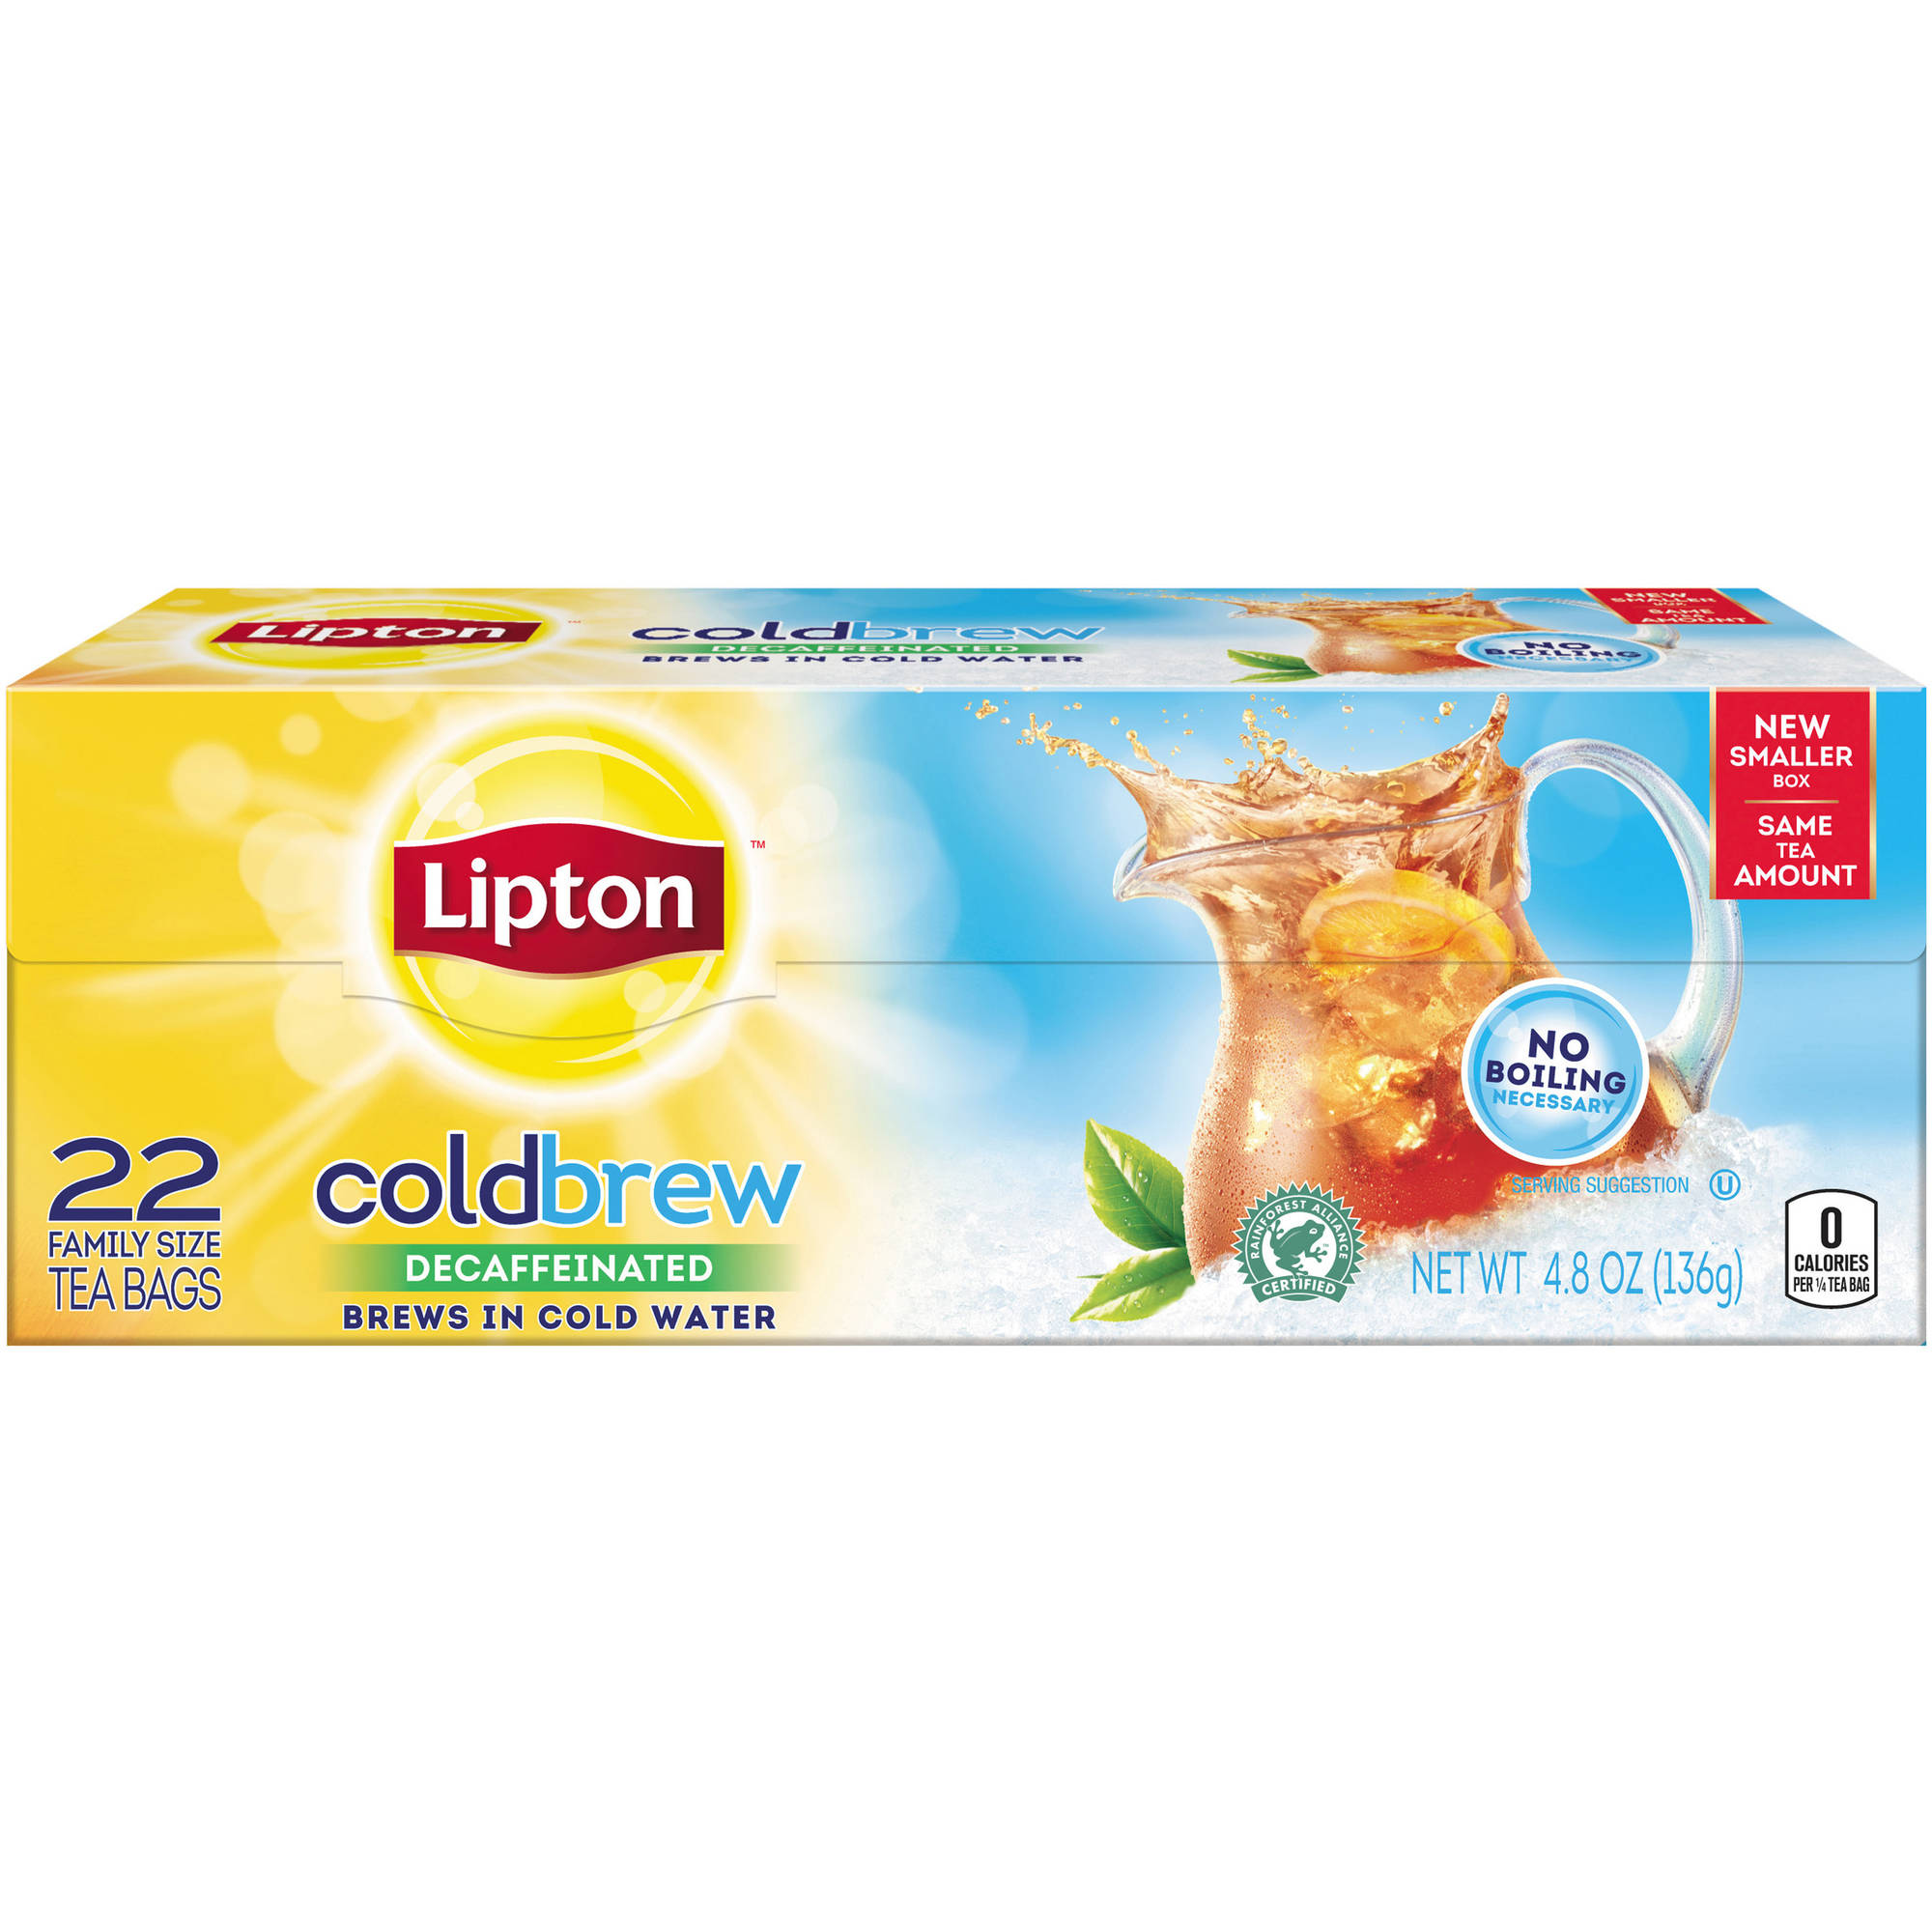 Lipton Cold Brew Decaffeinated Family Size Black Iced Tea Bags, 22 ct